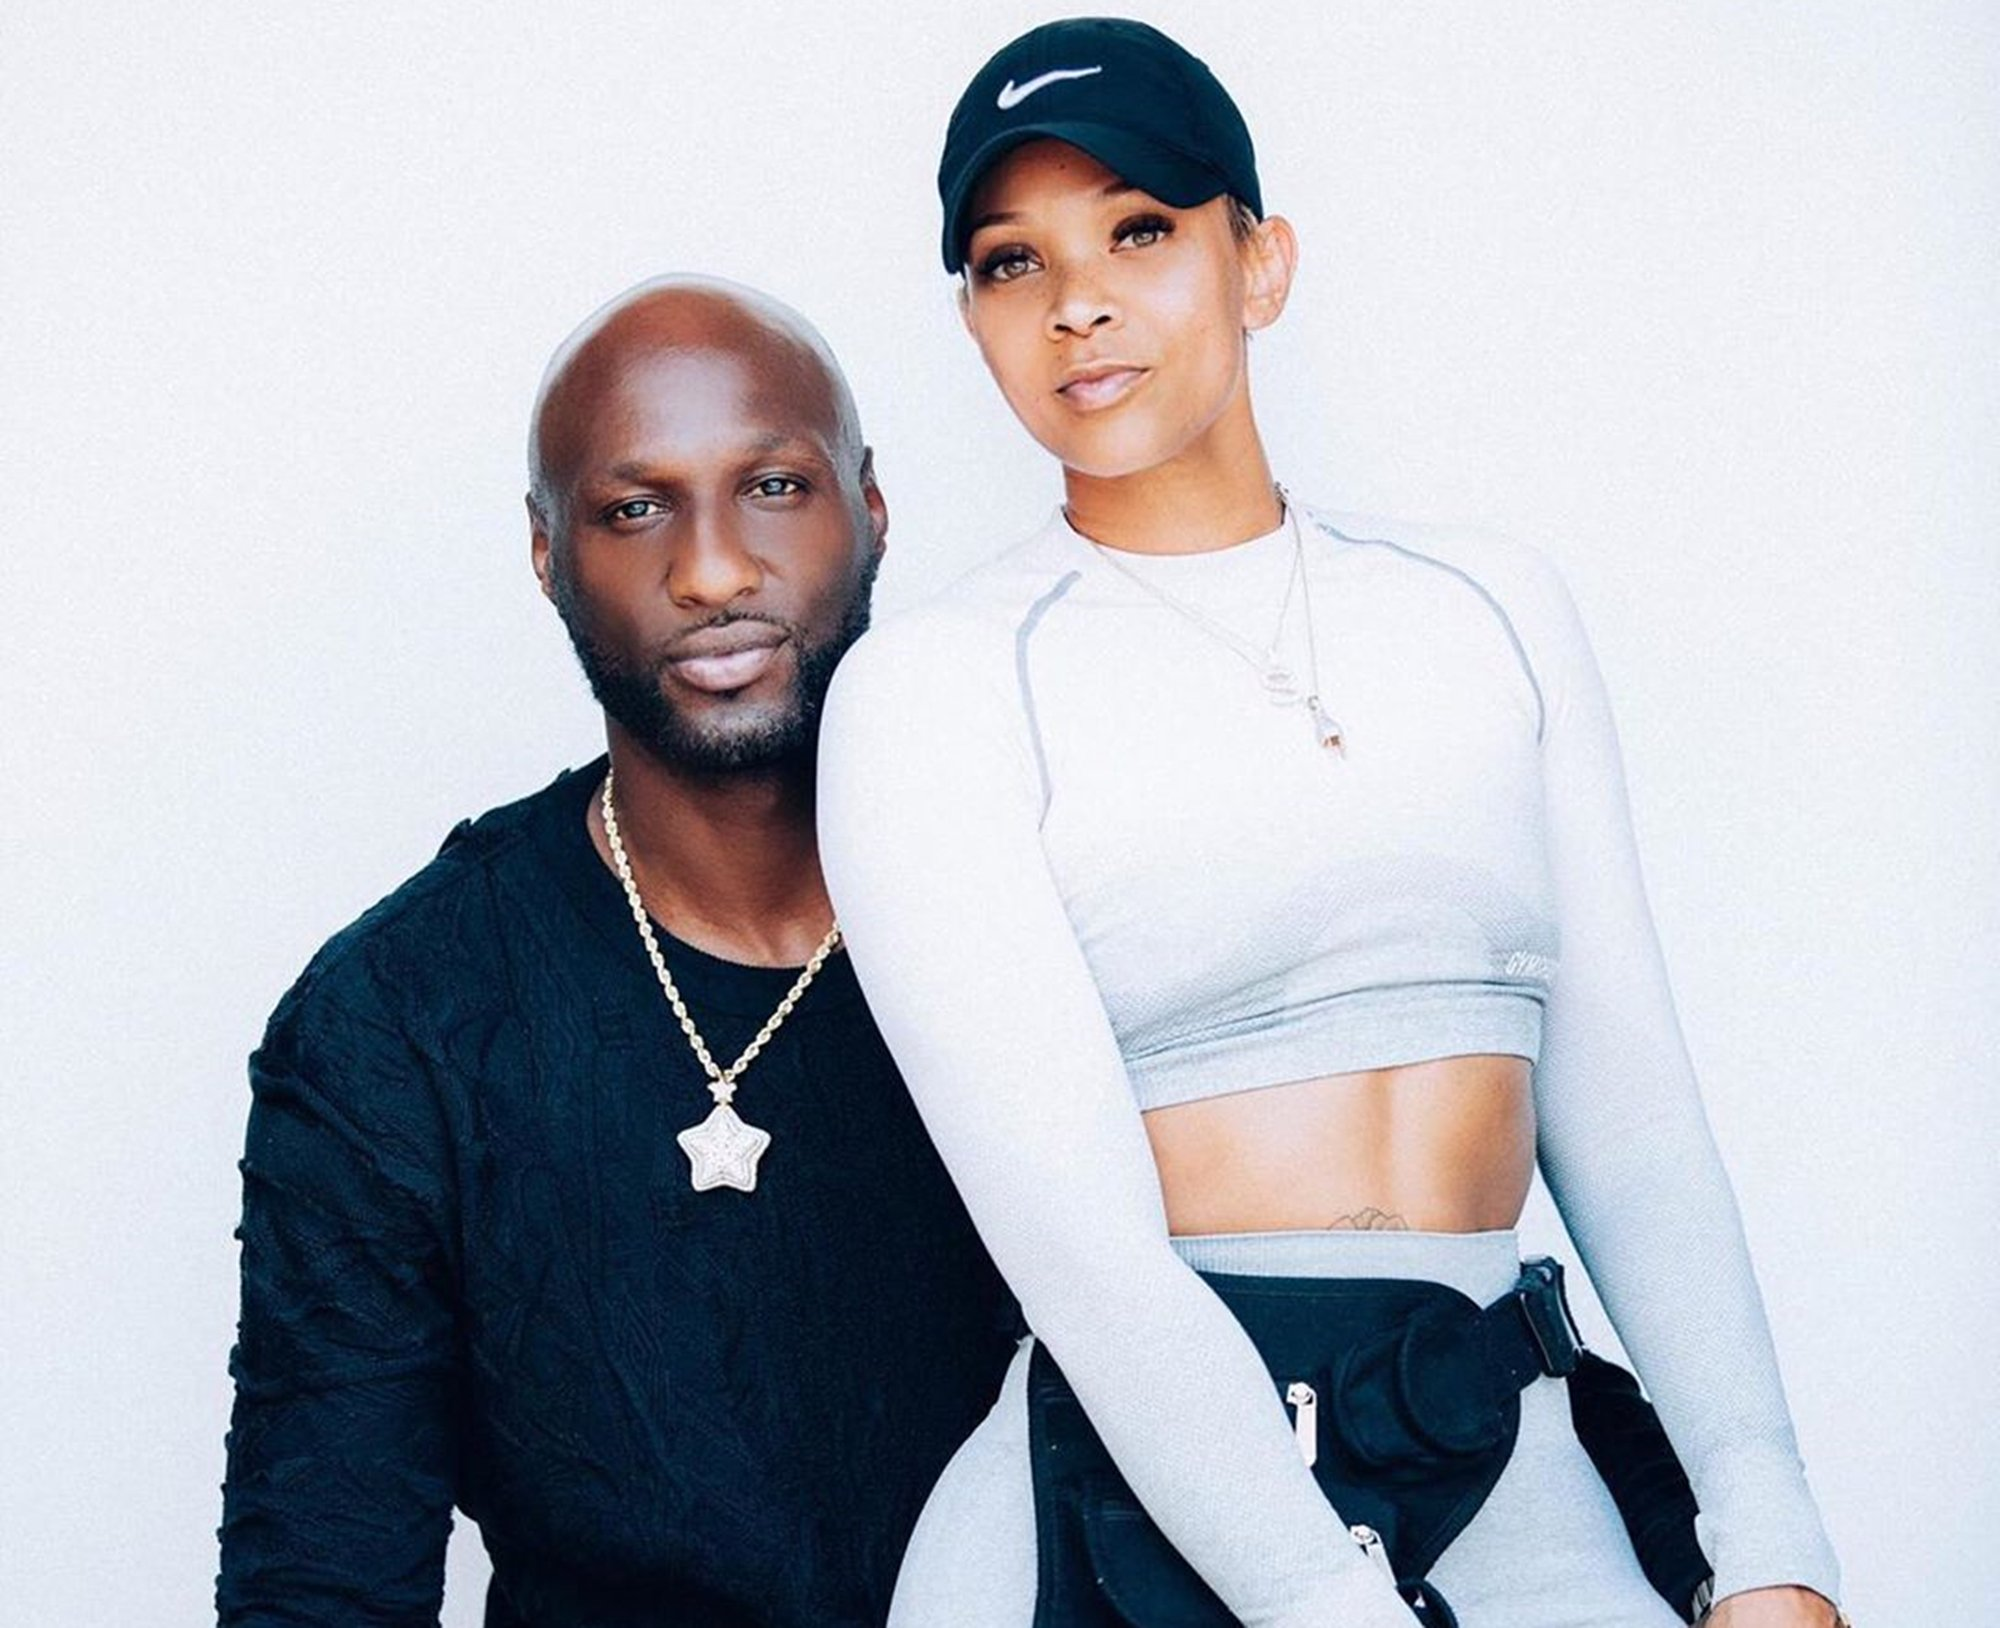 Lamar Odom And His New GF Sabrina Parr Talk About Their Relationship